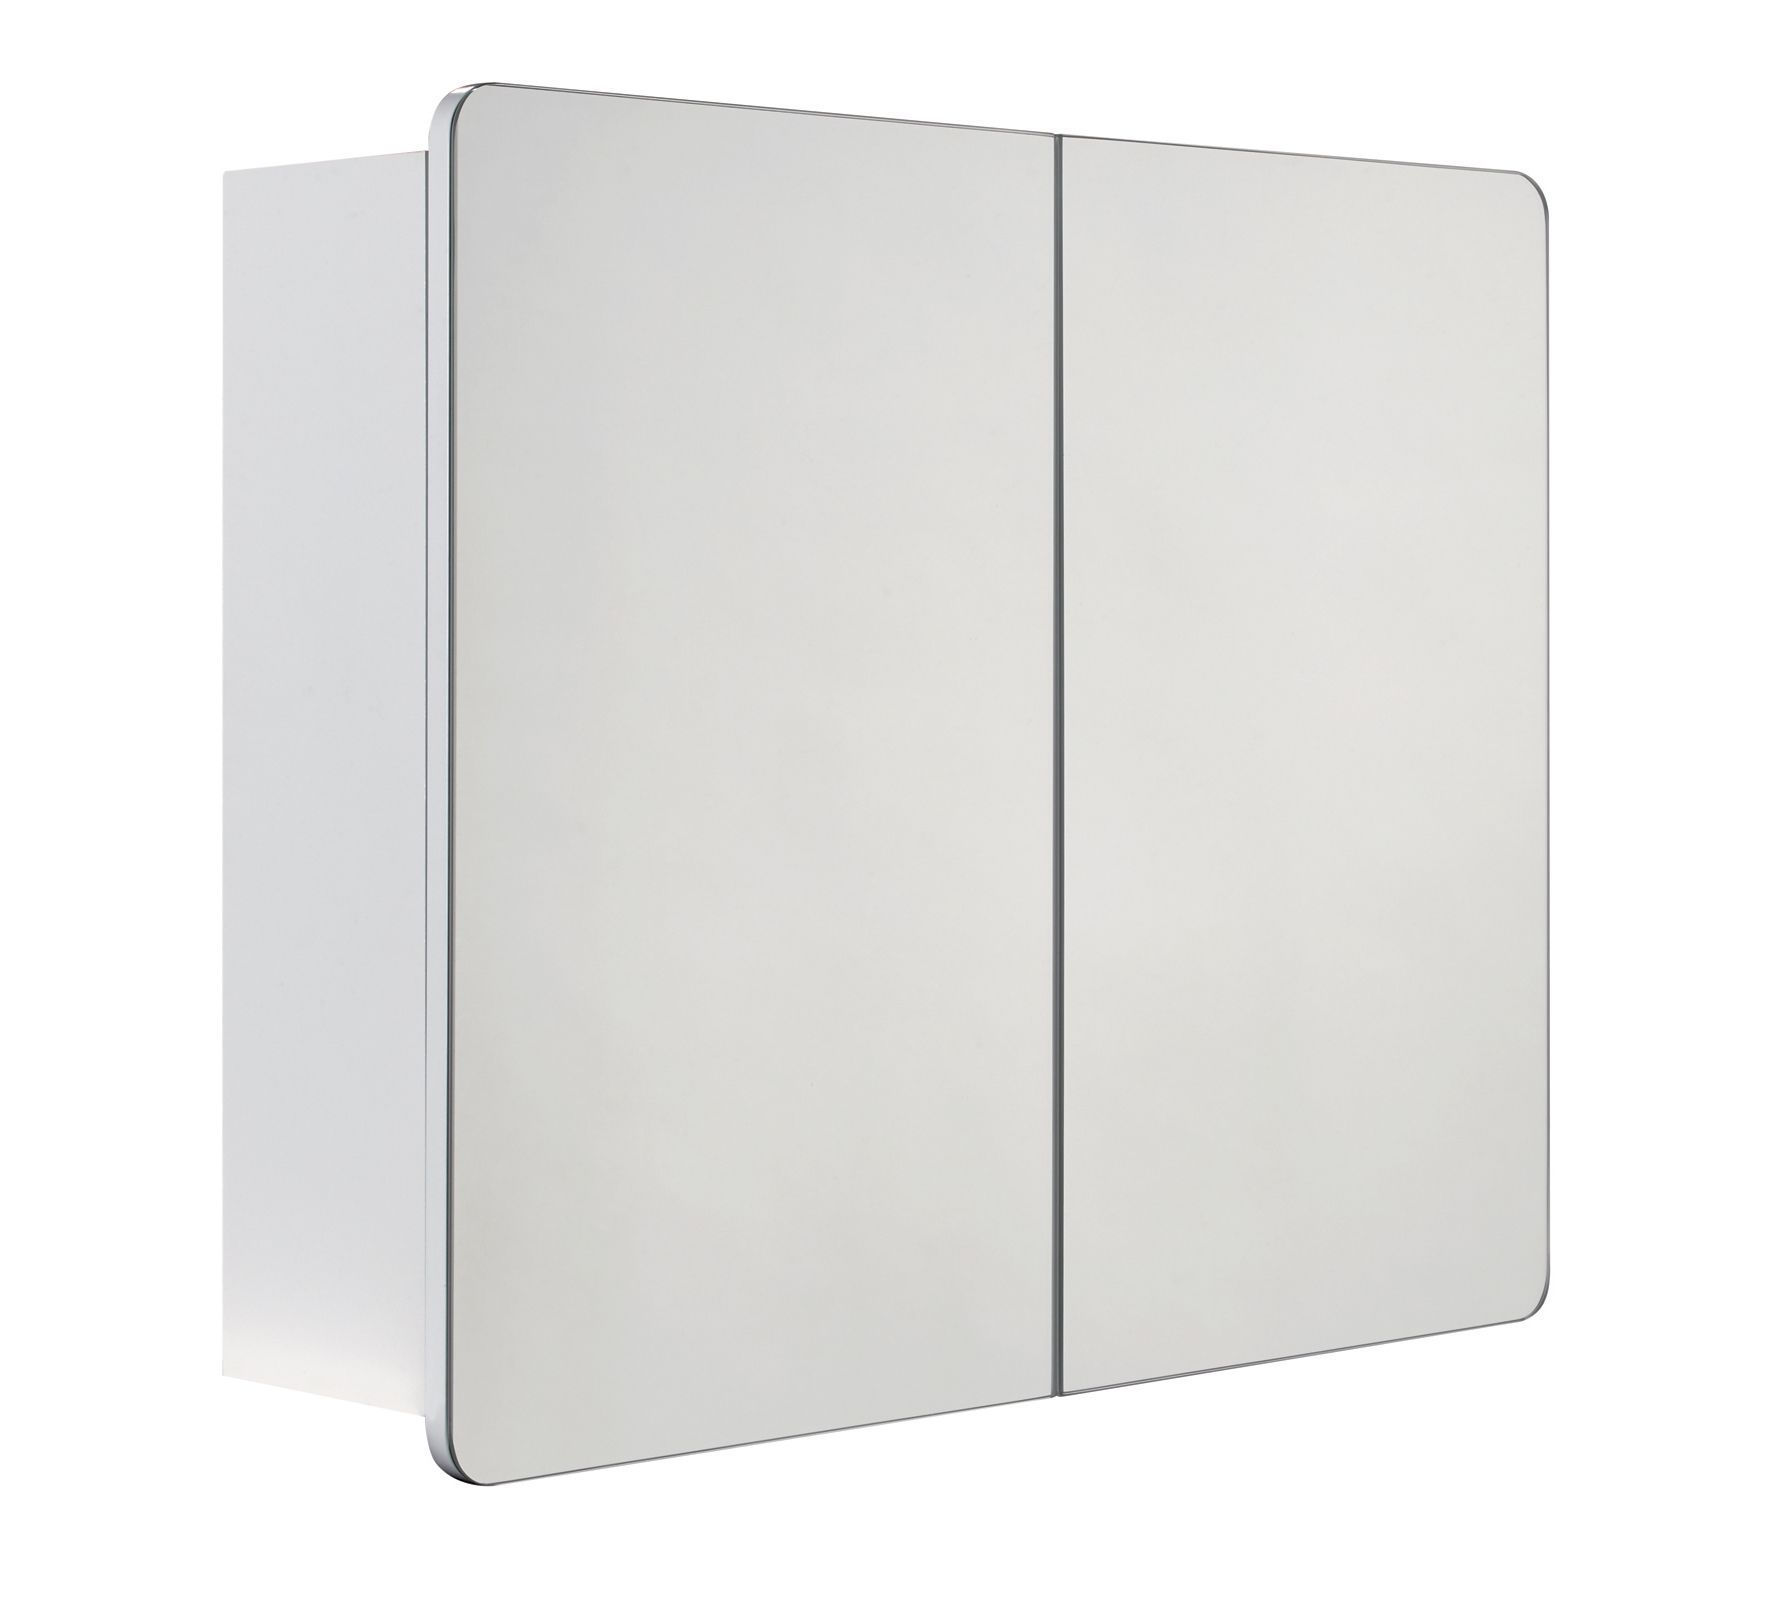 Cooke U0026 Lewis Lesina Double Door White Mirror Cabinet | Departments | DIY  At Bu0026Q.